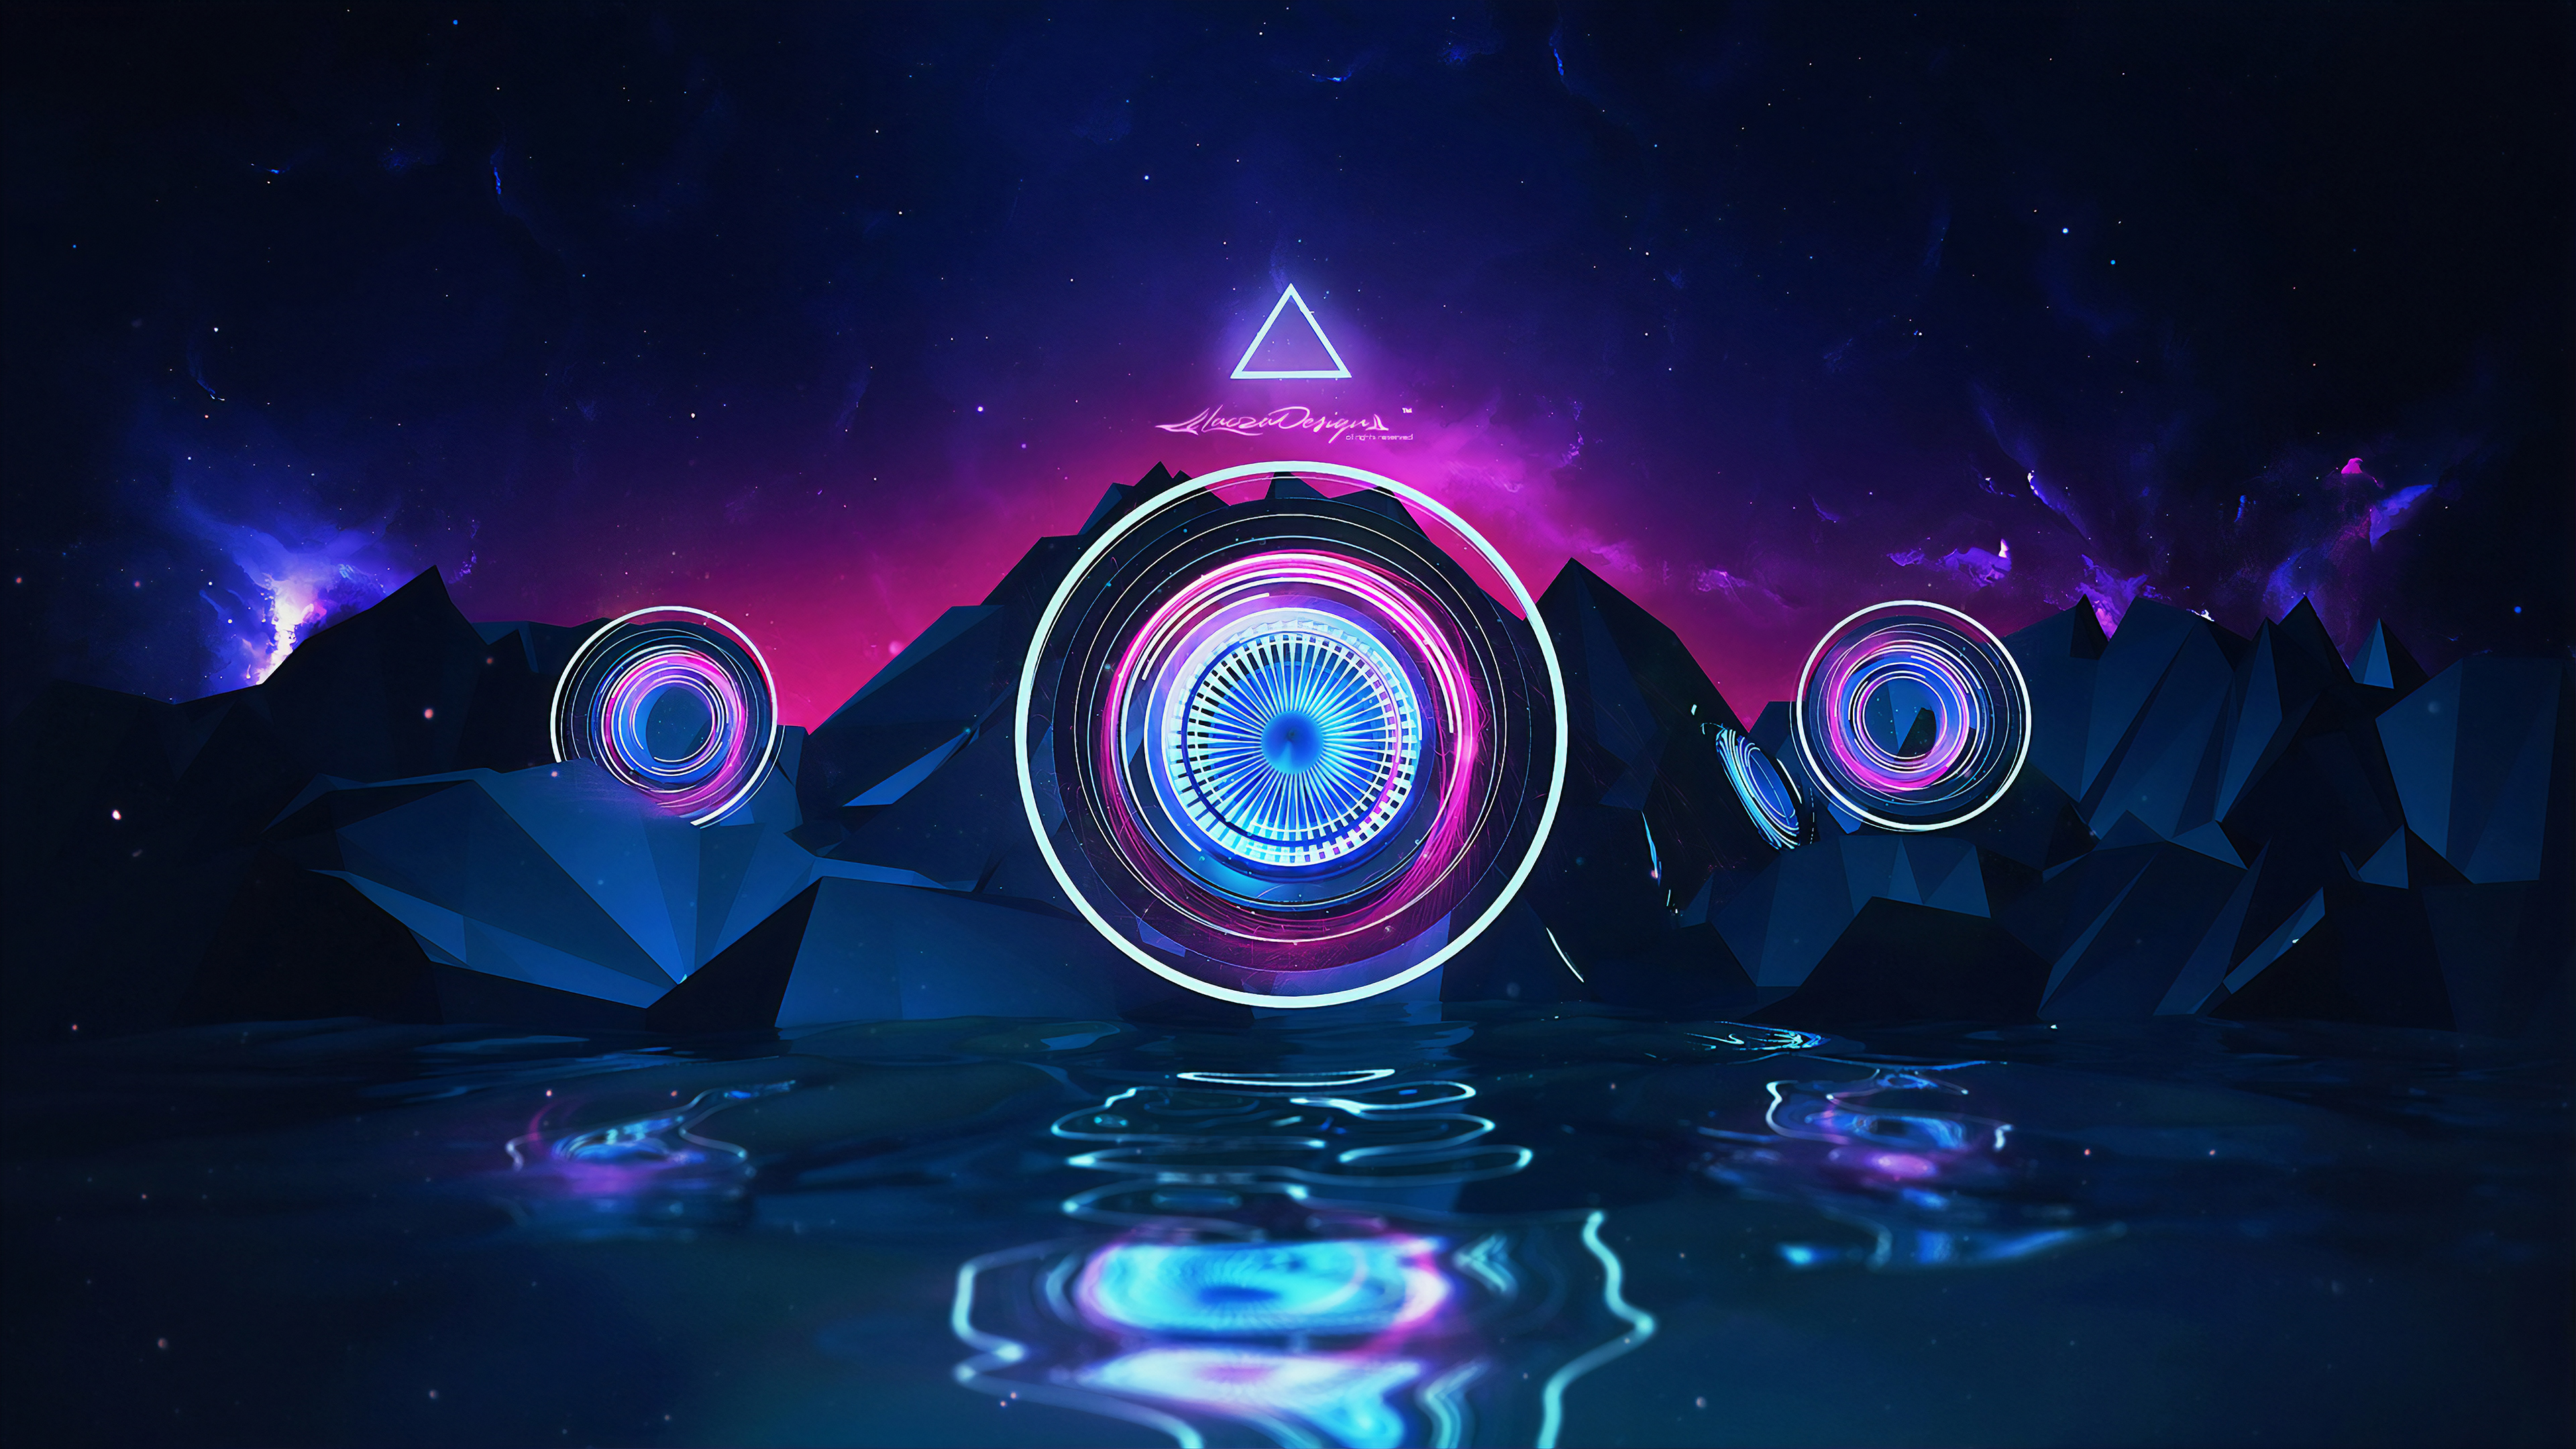 General 3840x2160 digital digital art artwork fantasy art abstract 3D Abstract neon neon lights lights futuristic geometric figures geometry space galaxy universe spacescapes space art landscape Lacza colorful glowing 3D water sea reflection surreal dark dusk